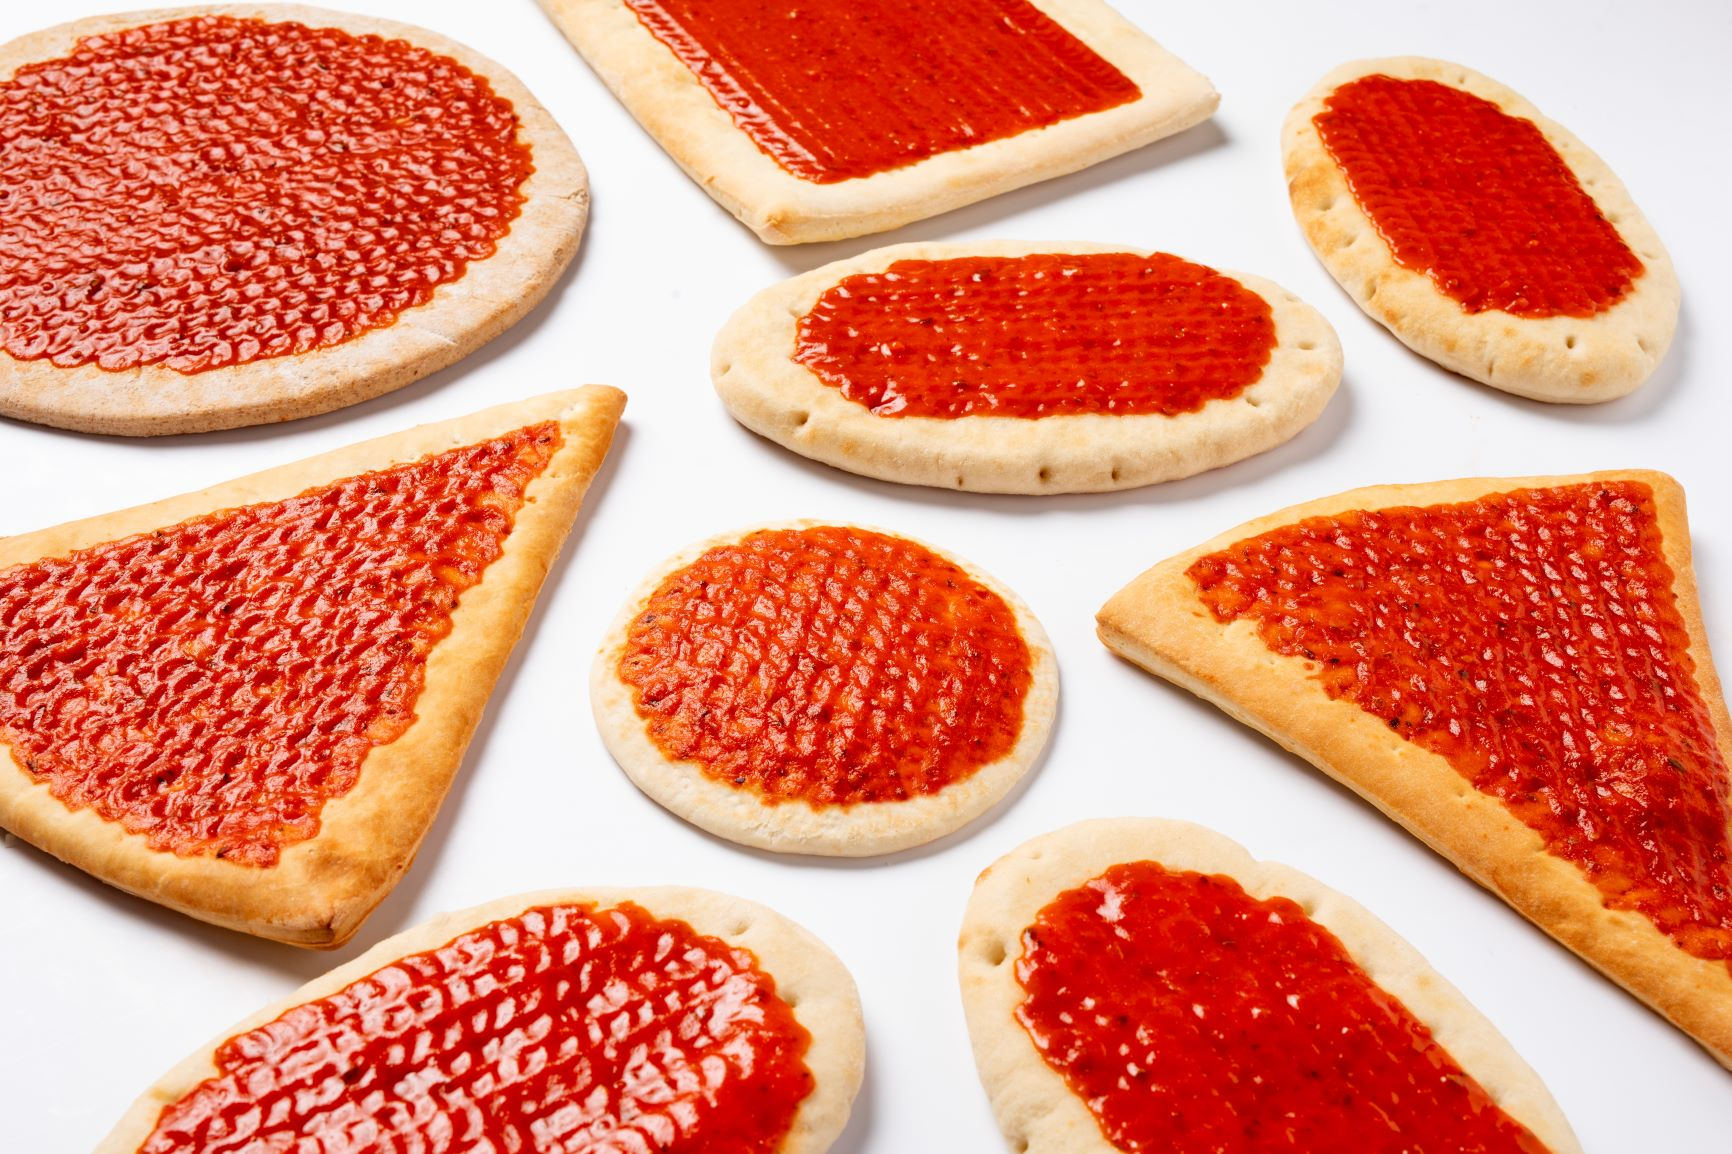 Various slices of pizza in different shapes covered by FoodJet pizza sauce depositor